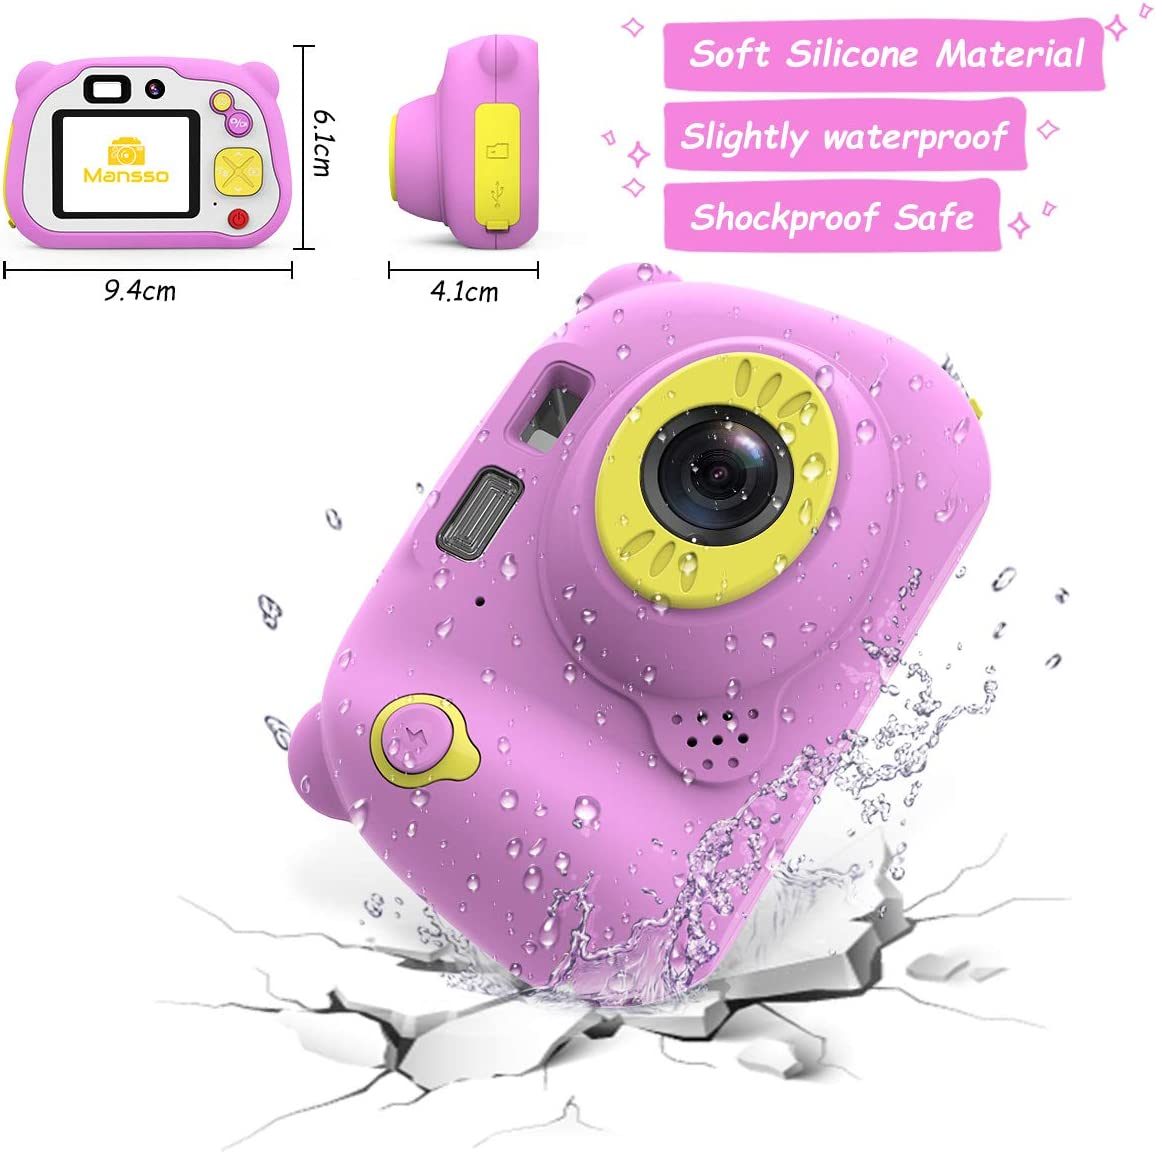 1080P HD Digital Camera for Kids with 2 Inch IPS Screen and 32GB SD Card,Mini Rechargeable and Shockproof Camera Creative DIY Camcorder for 3-12 Years Boys Girls Gift Blue Mansso Kids Camera